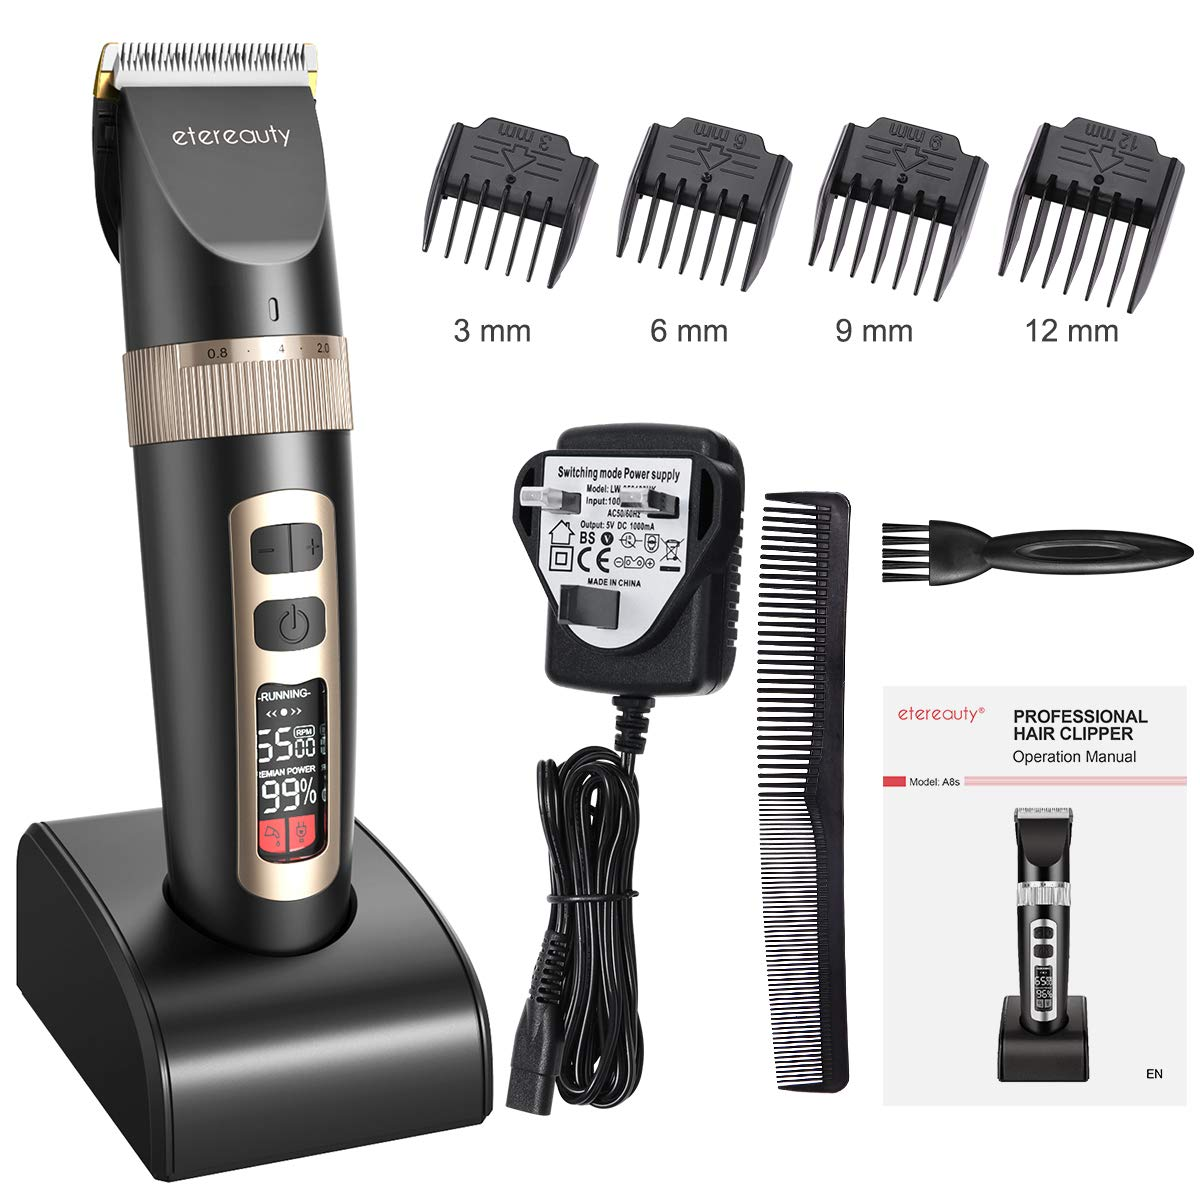 Hair Clippers Etereauty Professional Cordless Mens Clippers Hair